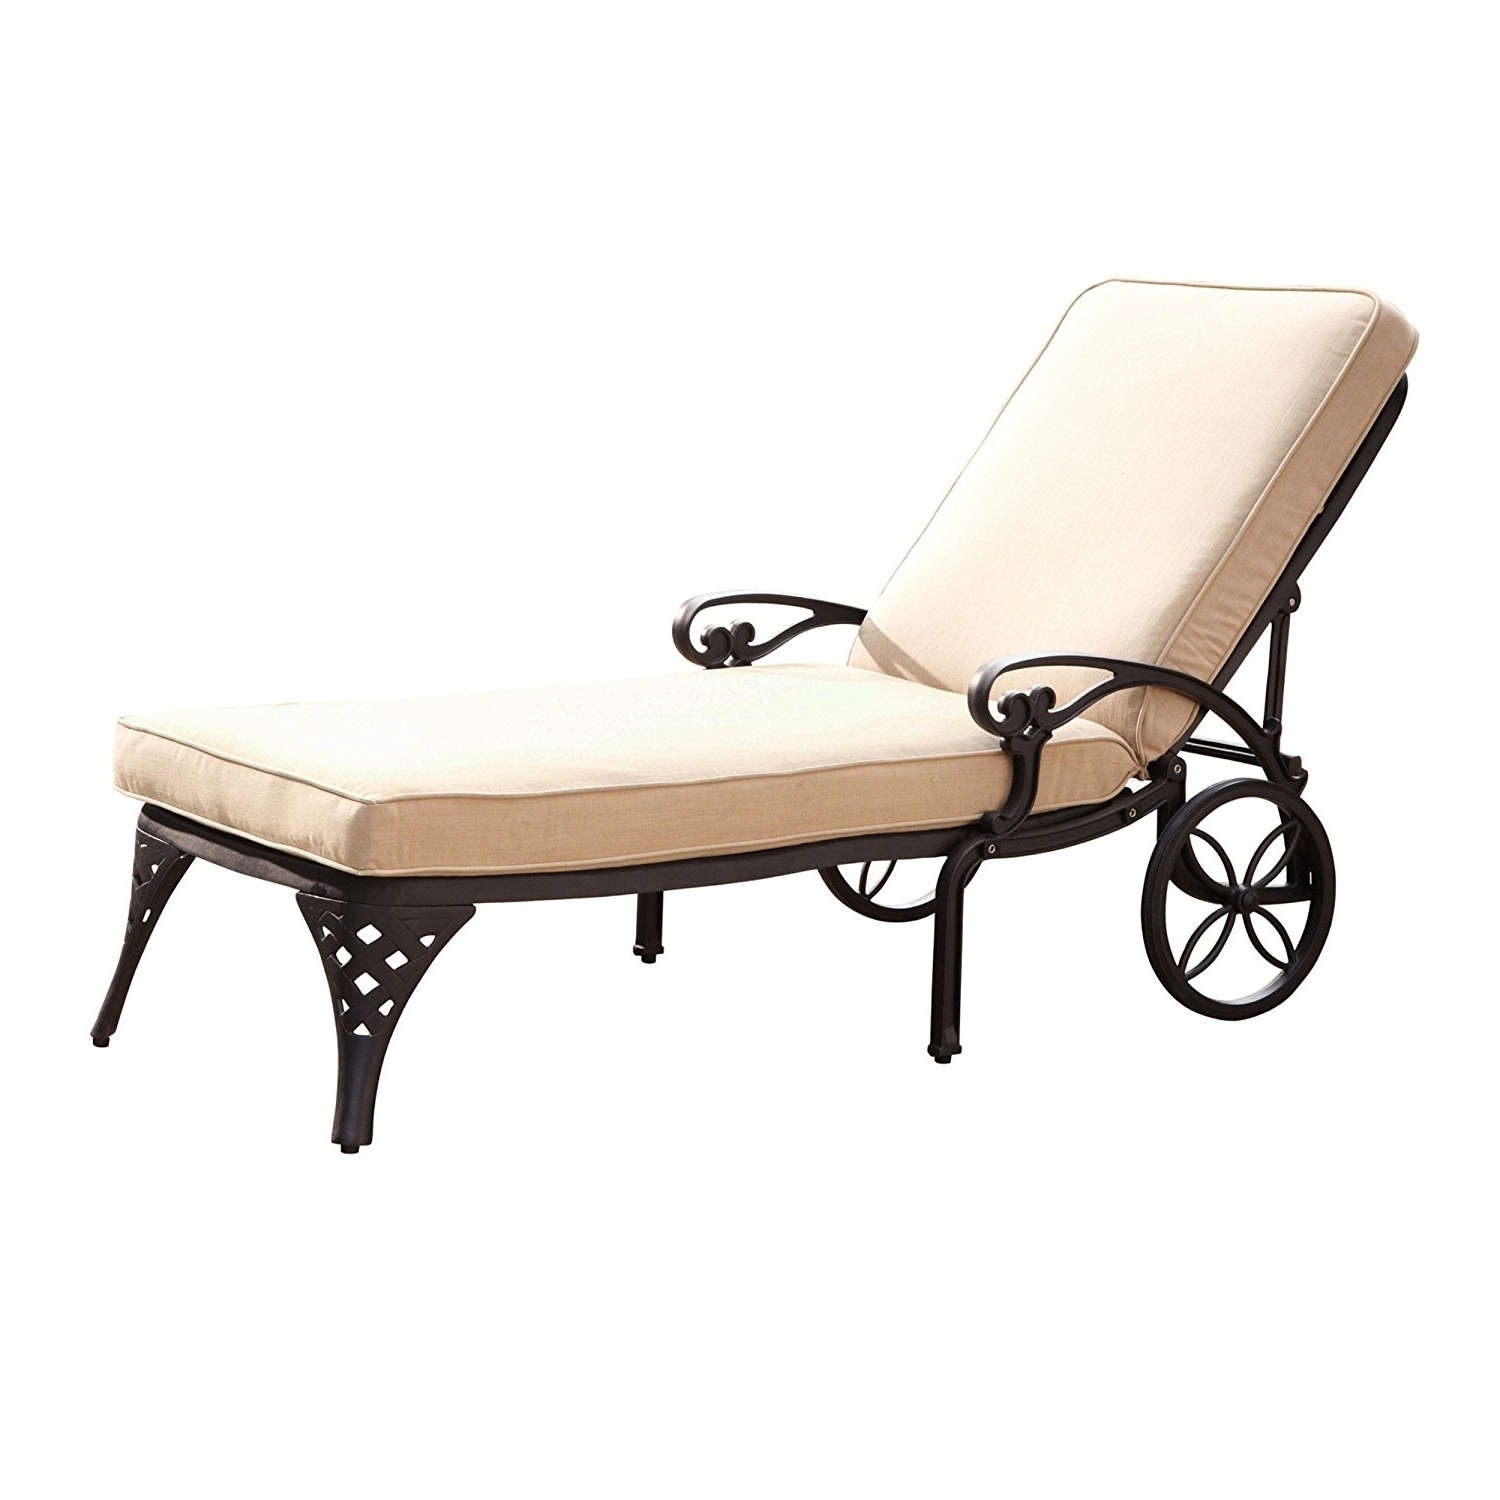 Amazon : Home Styles Biscayne Chaise Lounge Chair, Taupe Inside Popular Aluminum Chaise Lounge Chairs (View 3 of 15)